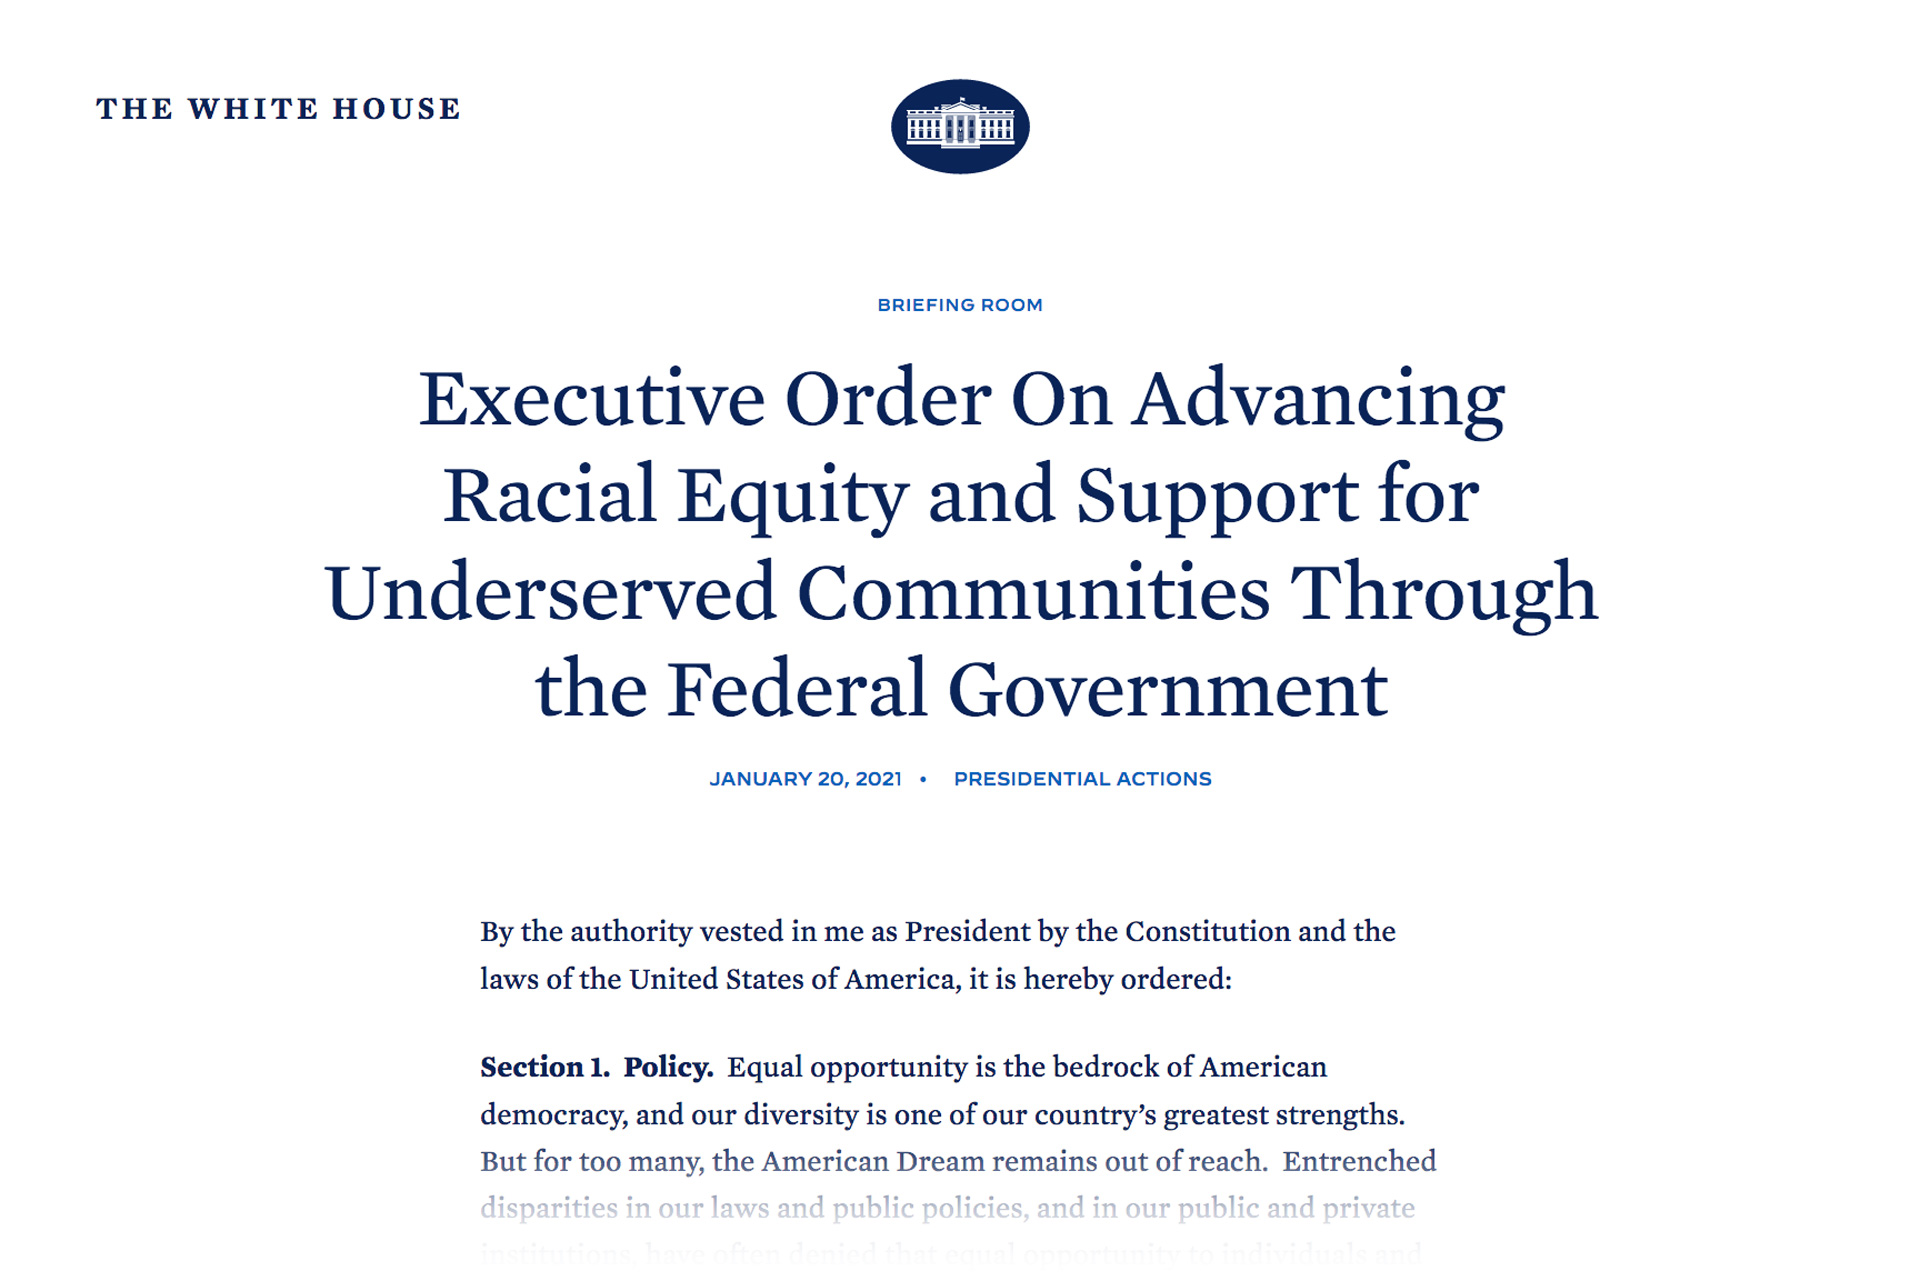 Executive Order On Advancing Racial Equity and Support for Underserved Communities Through the Federal Government